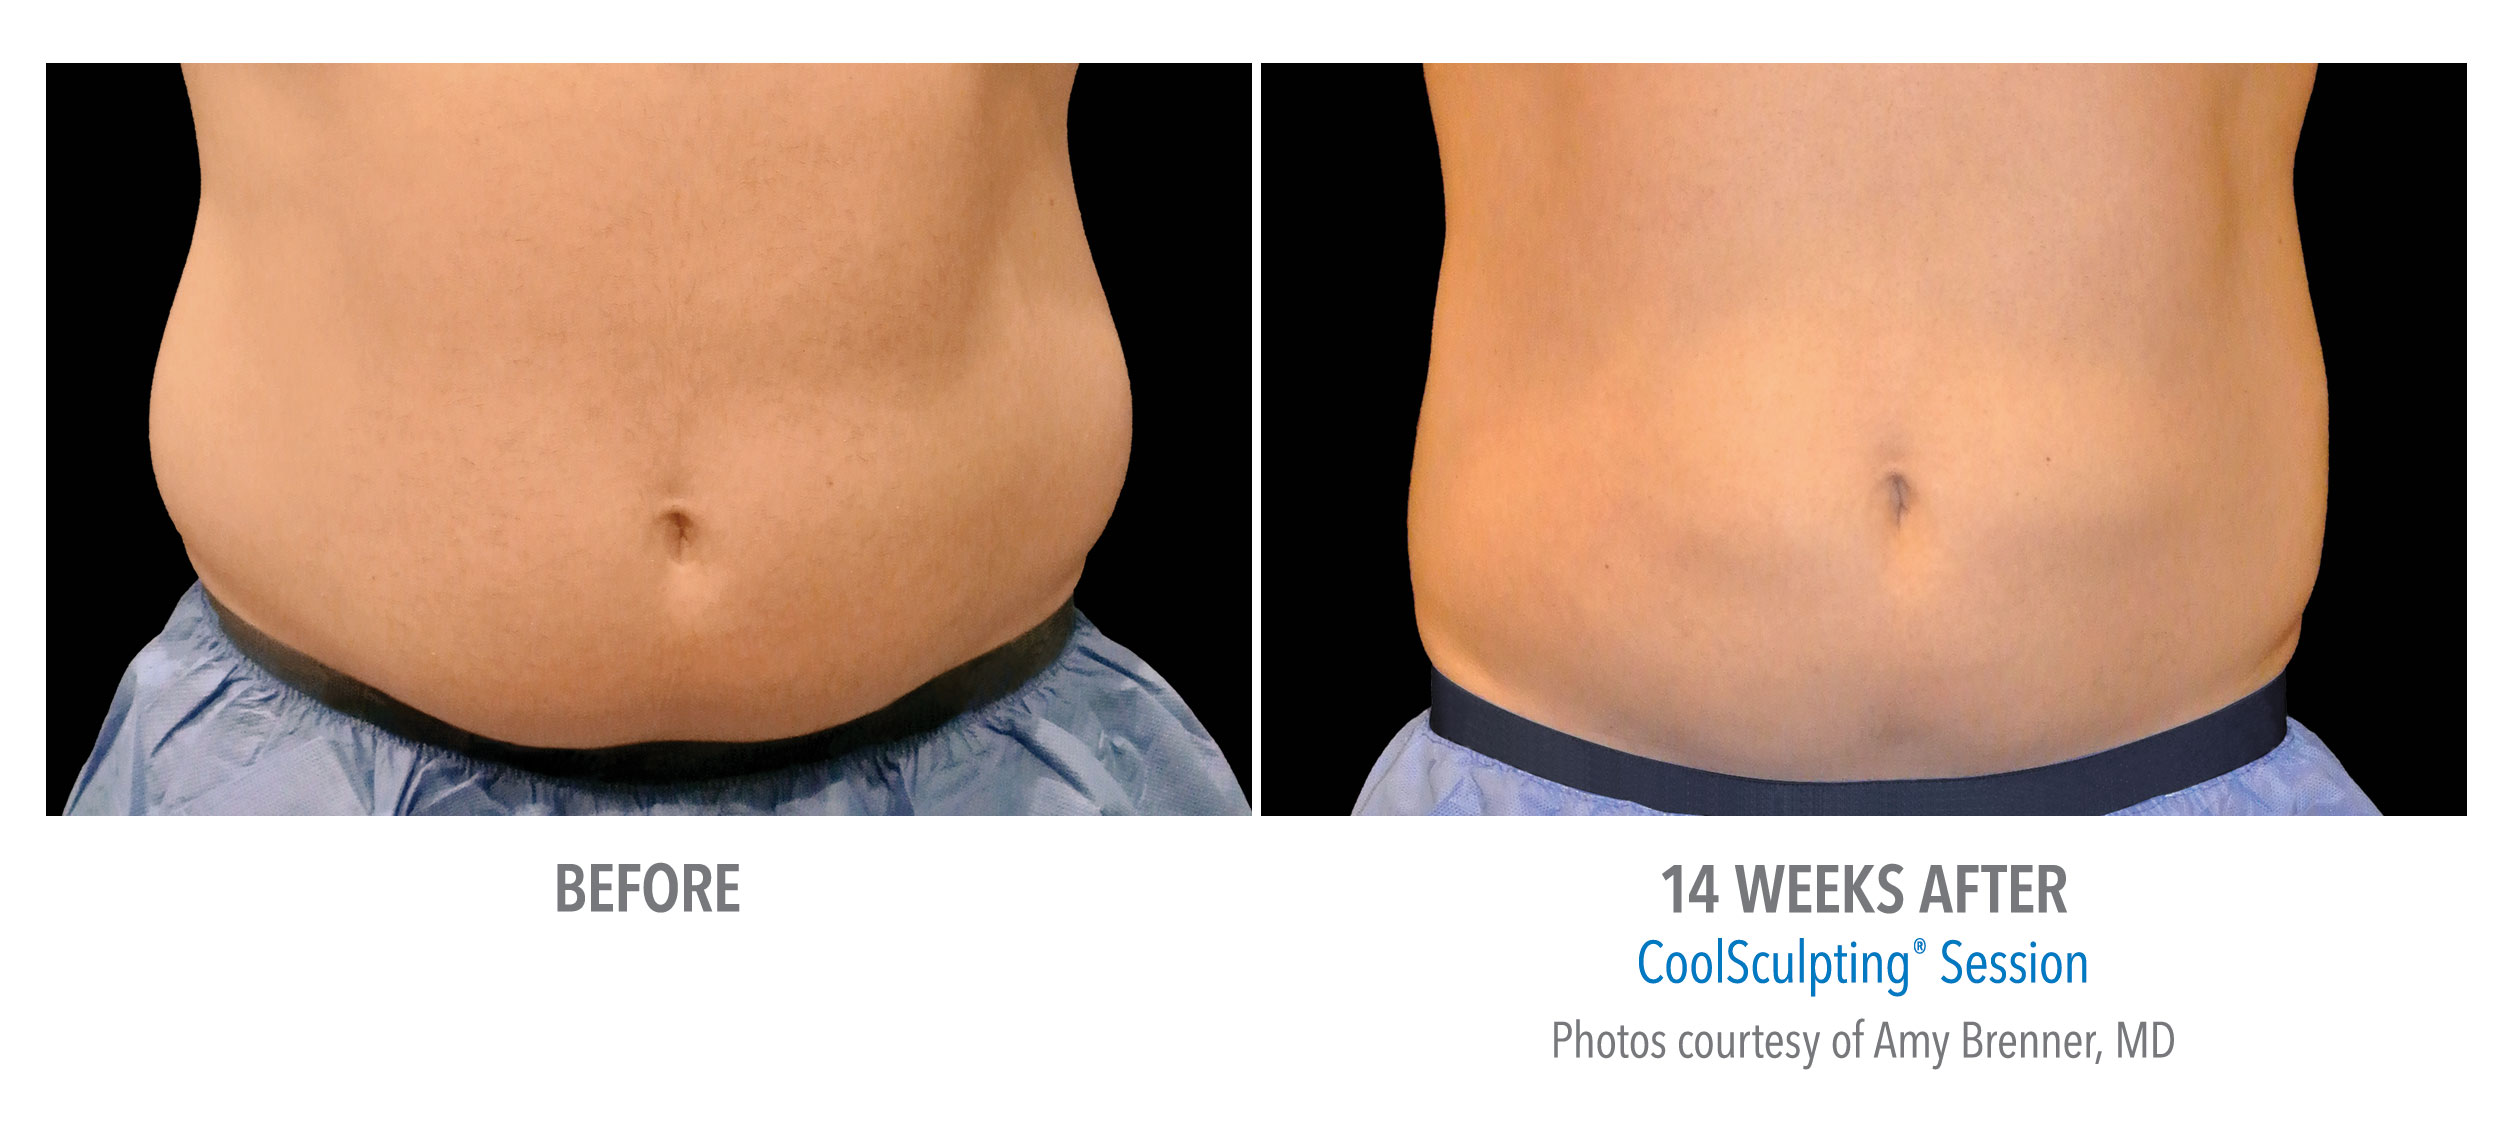 body contouring coolsculpting